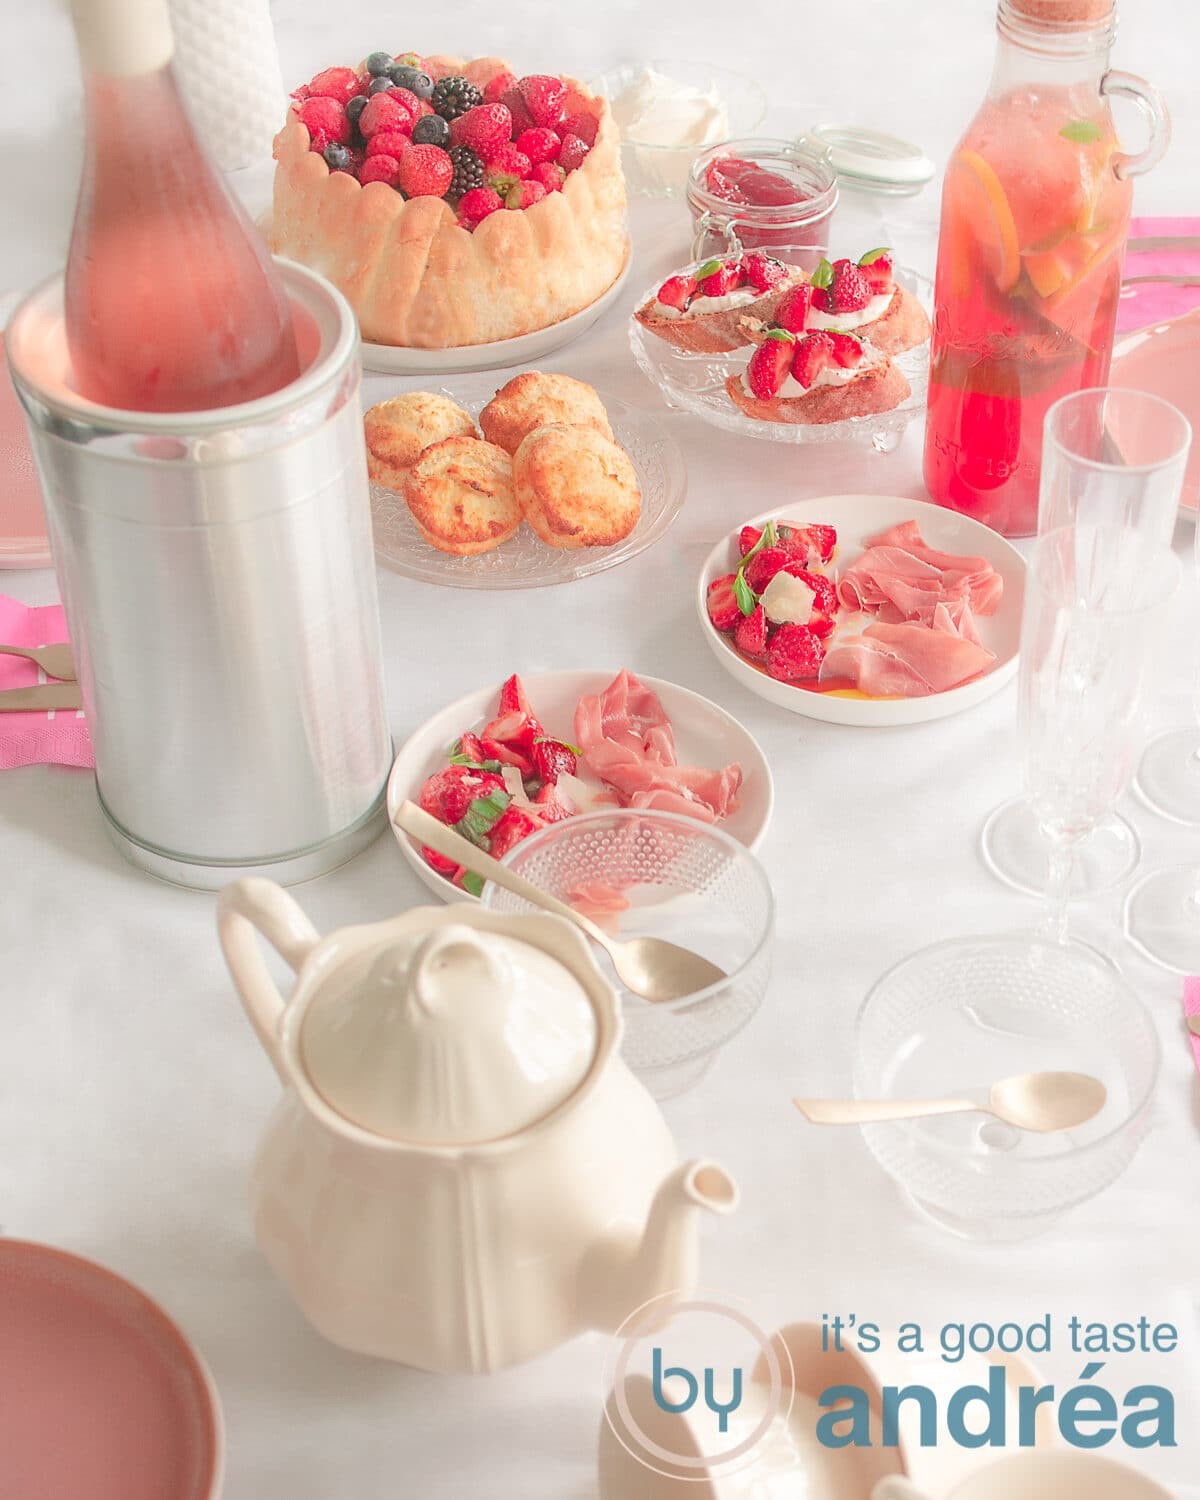 a table with recipes for a summer high tea with strawberries, including a tea pot, wine and lots of strawberreis